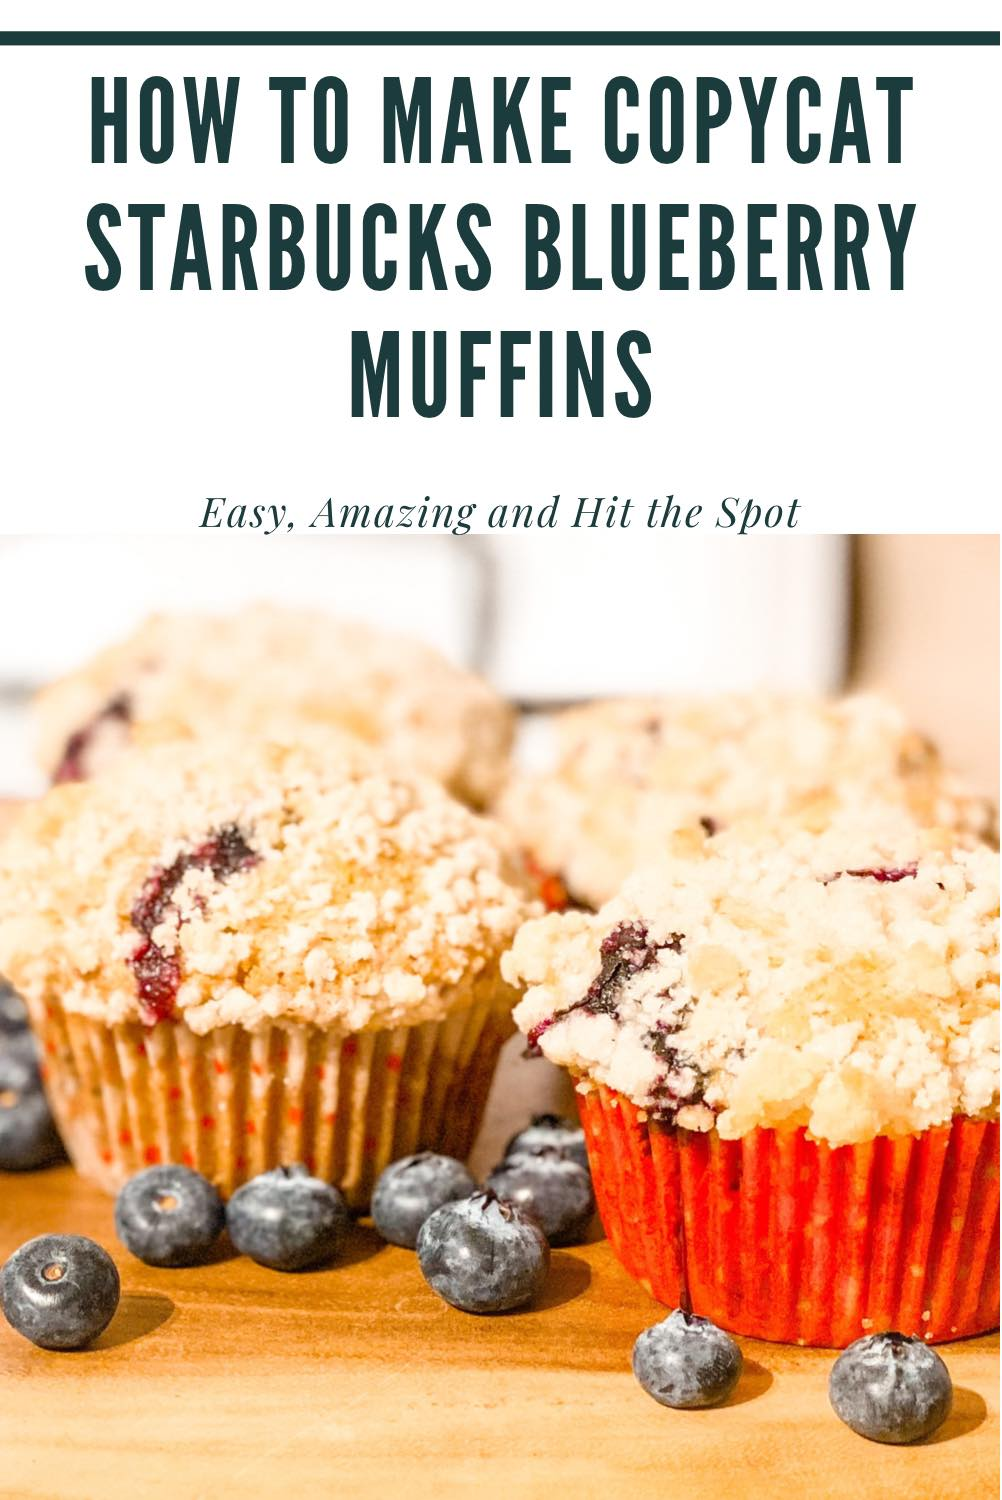 How to Make Copycat Starbucks Blueberry Muffins